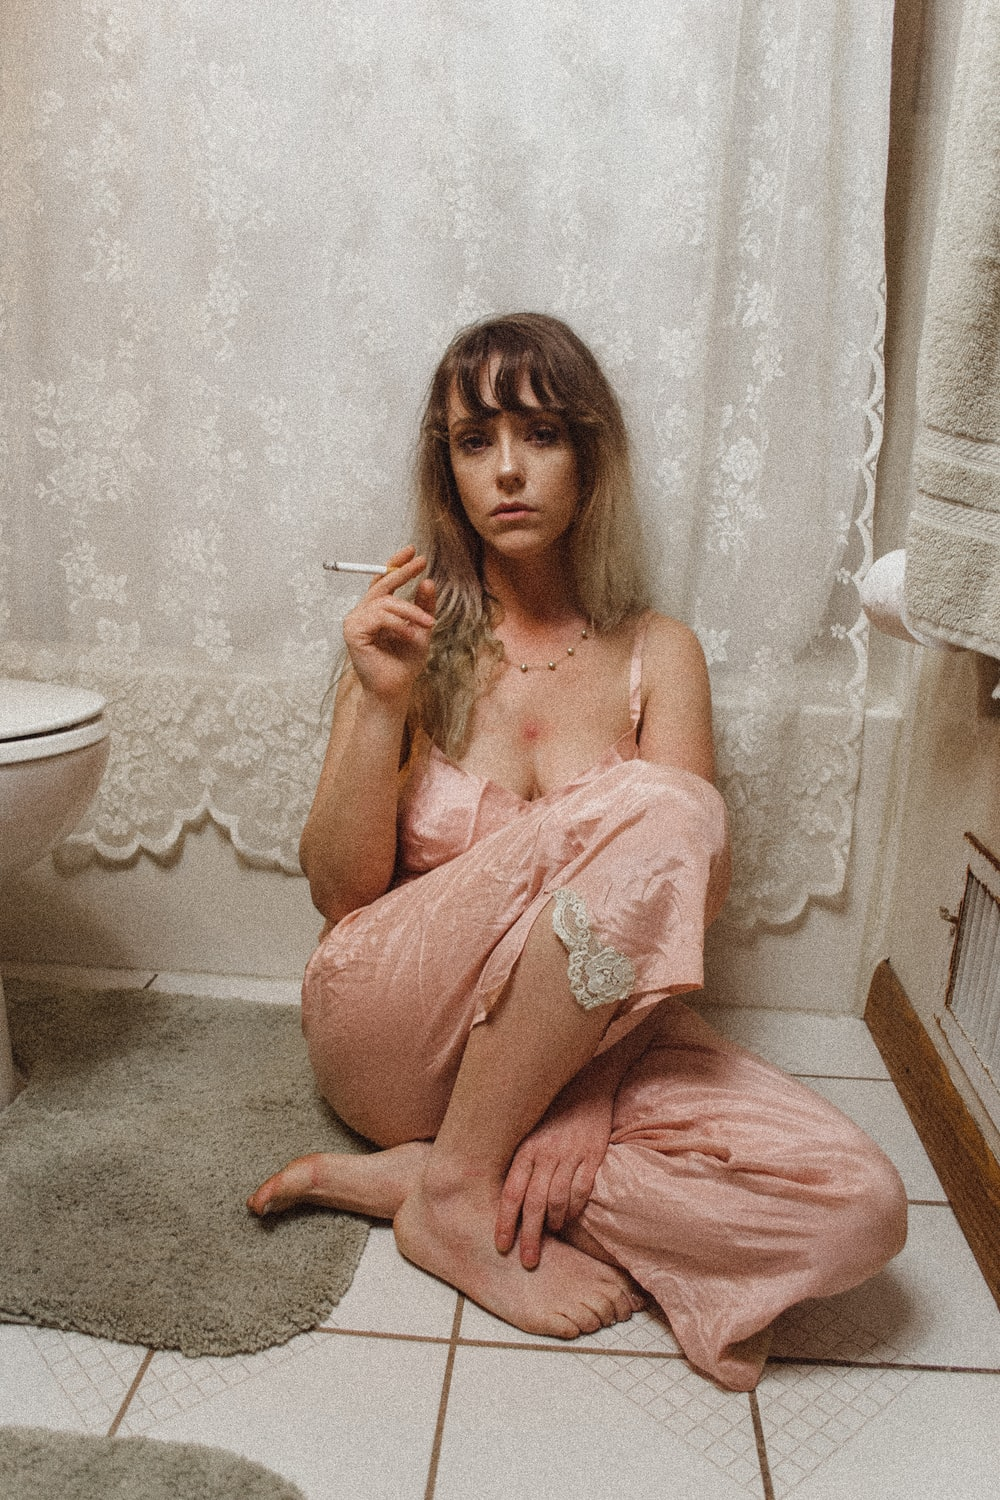 sitting woman wearing pajama pants smoking inside bathroom